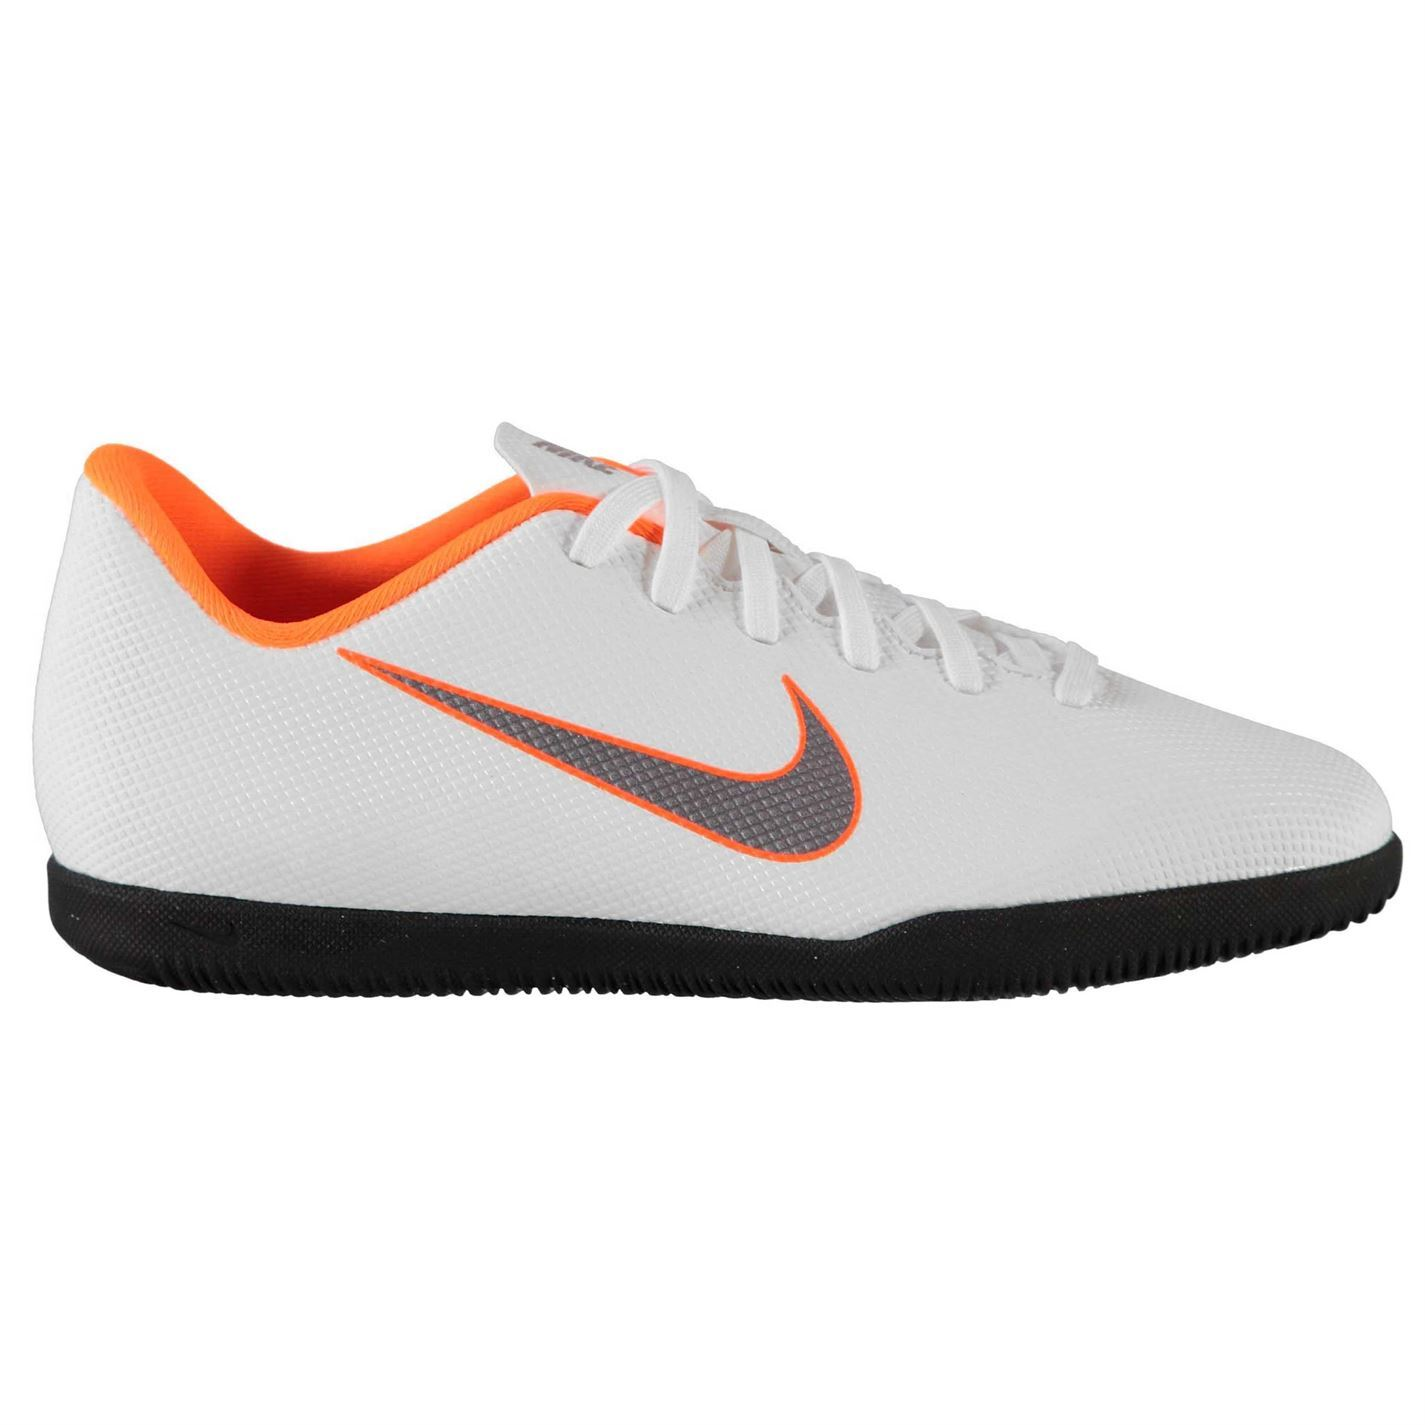 ab188fd14cd2 Soccer Club Indoor Vapor Juniors Mercurial Football Trainers Nike qE0tpwq